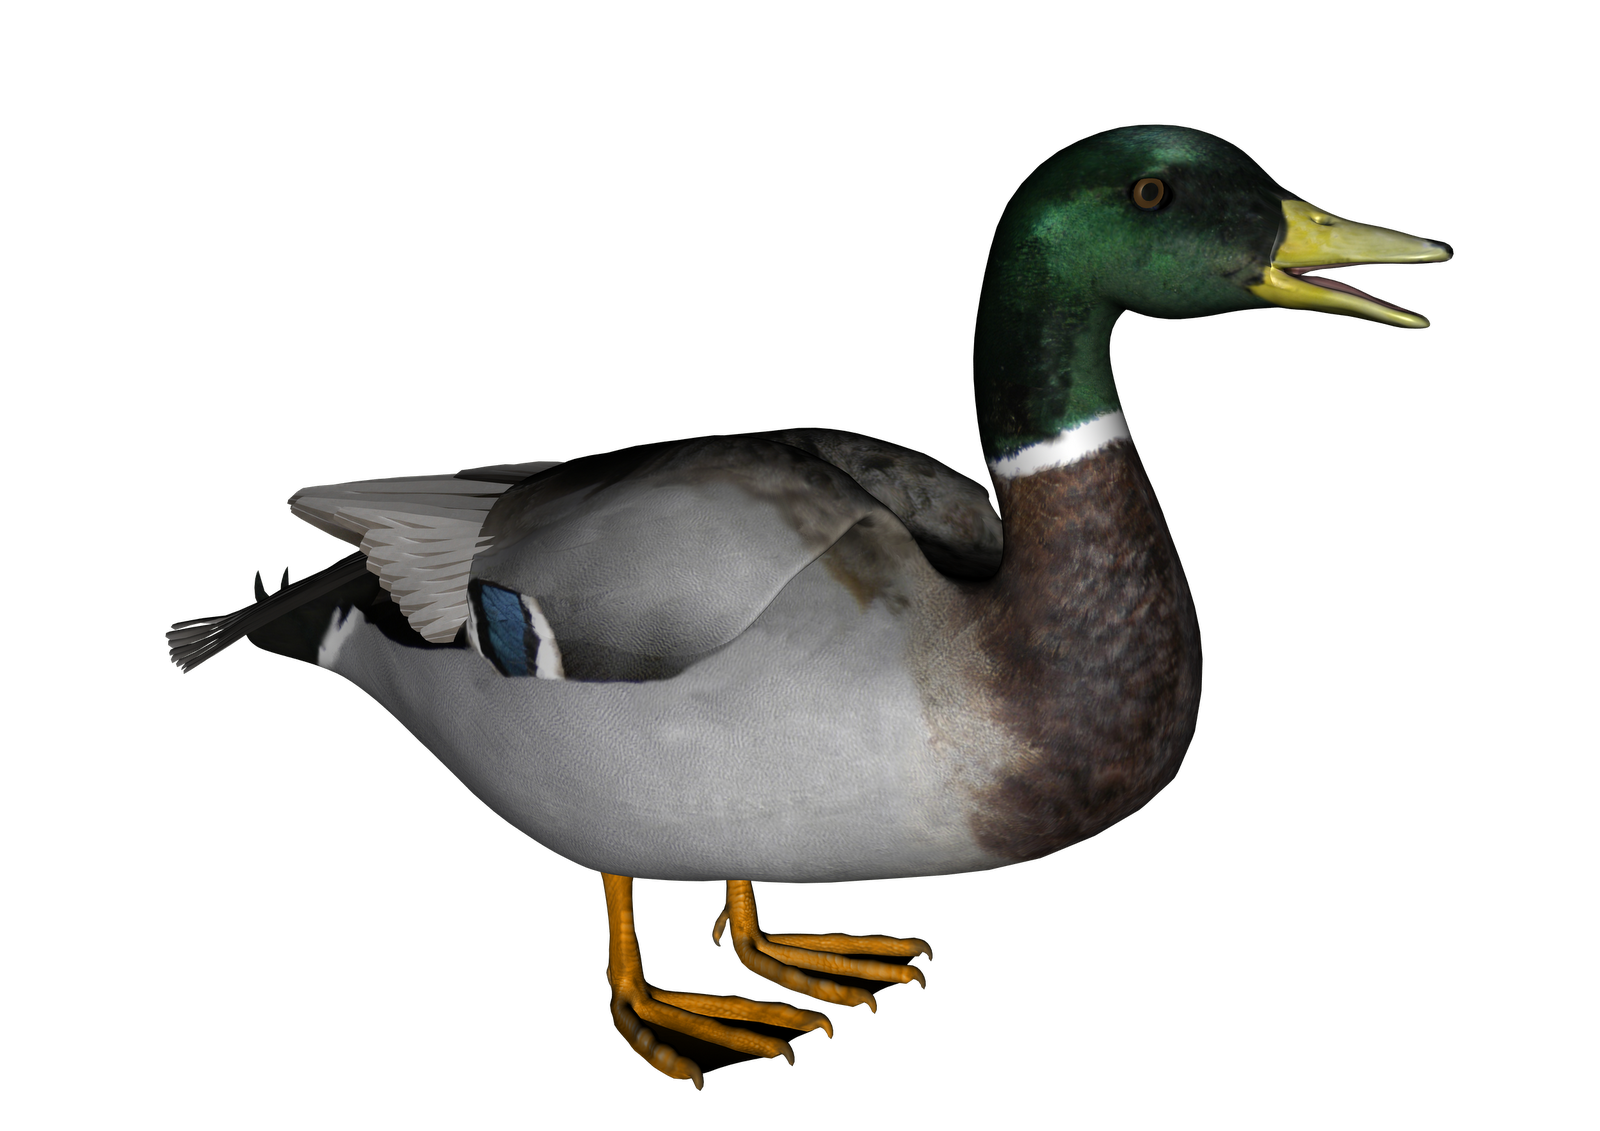 Duck Transparent Background